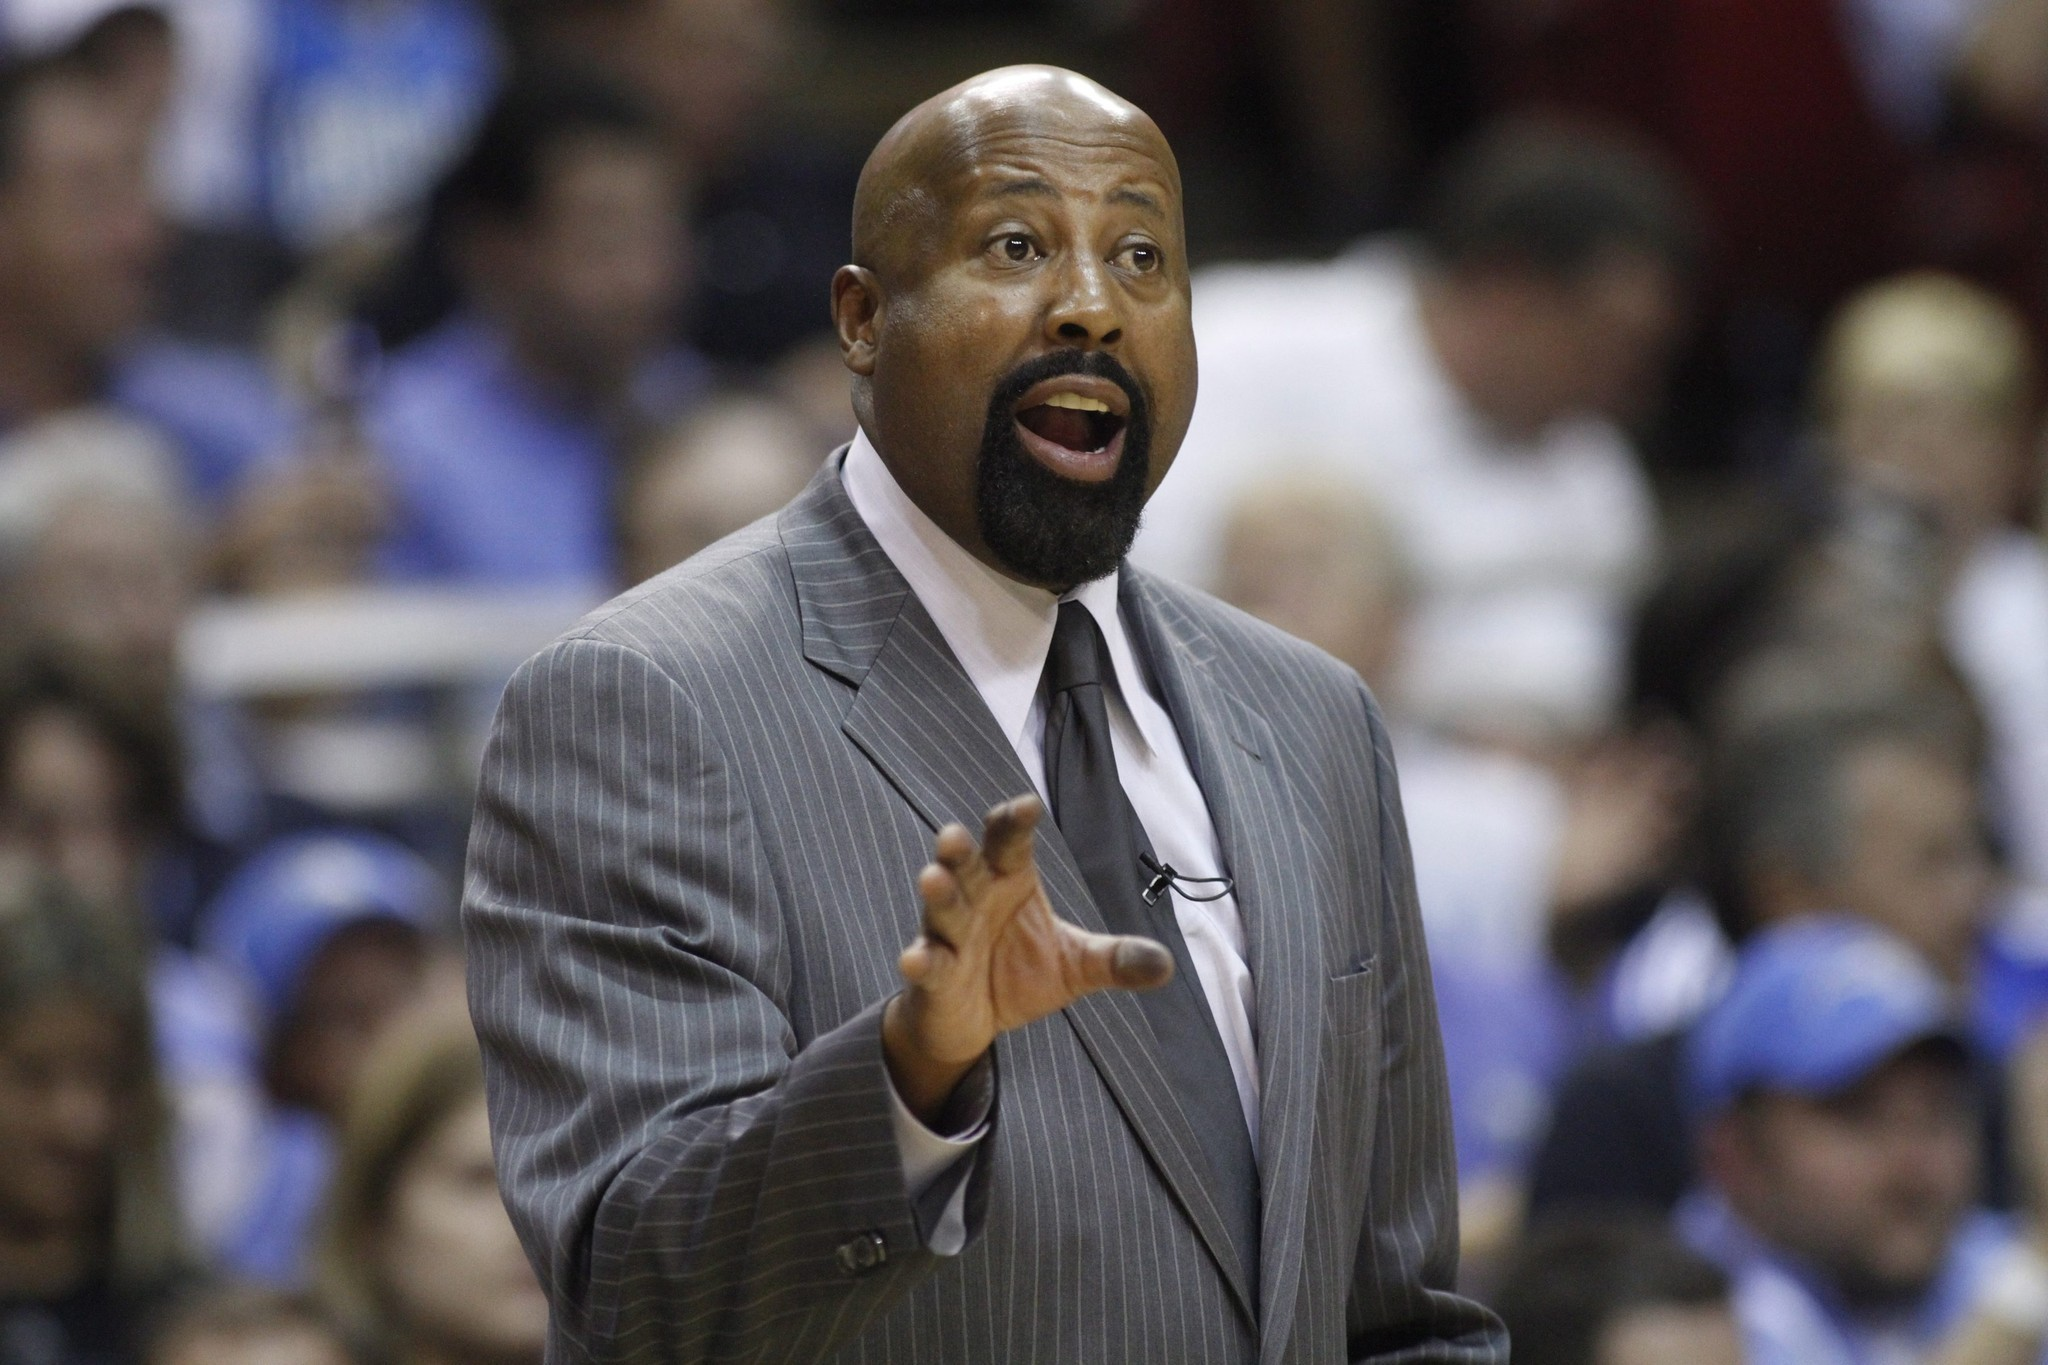 Clippers to hire former Knicks coach Mike Woodson as an assistant